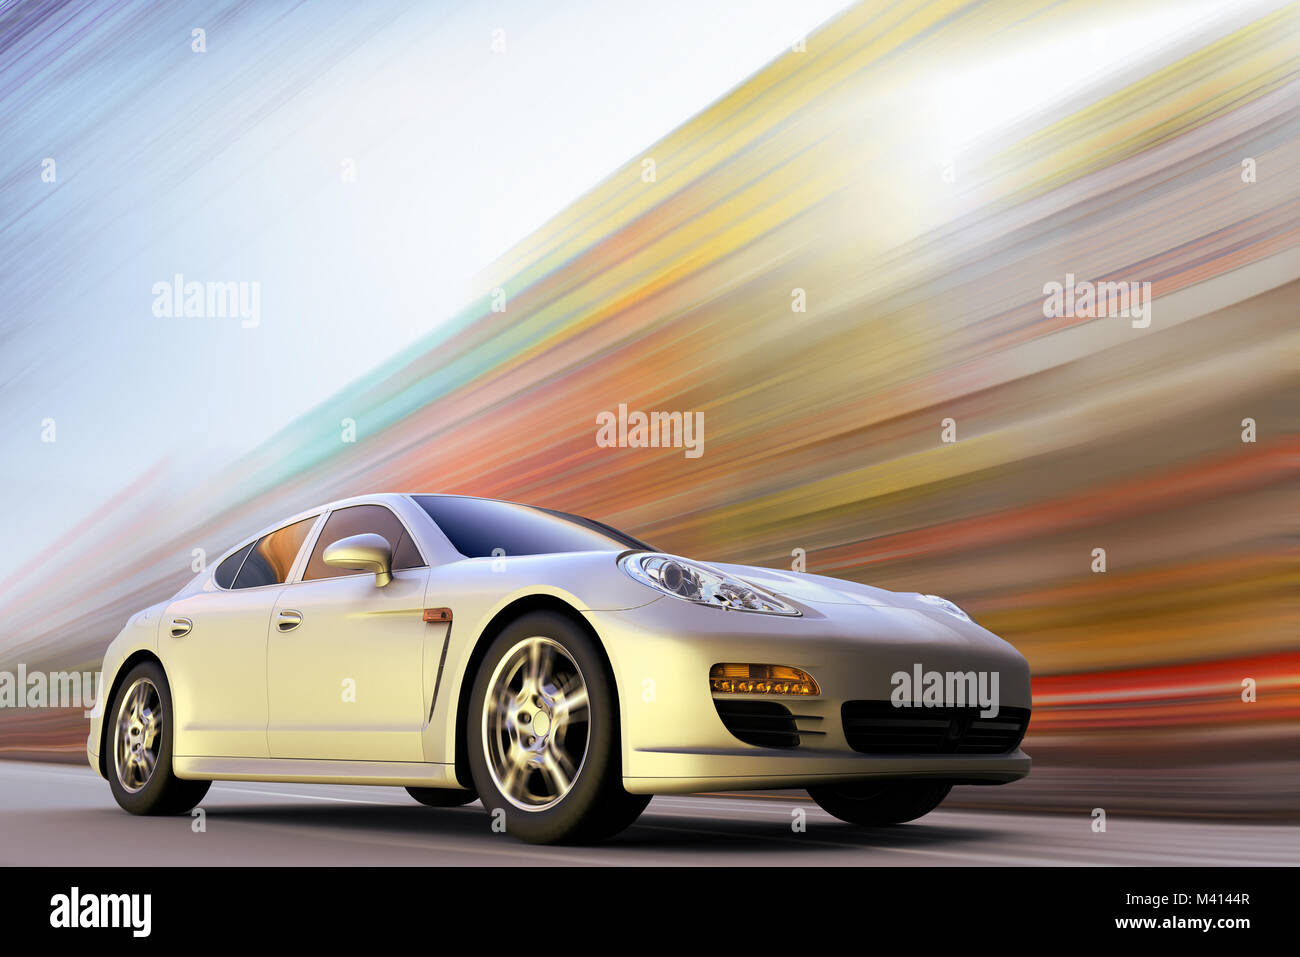 3D rendering of a sport car on motion at high speed - Stock Image